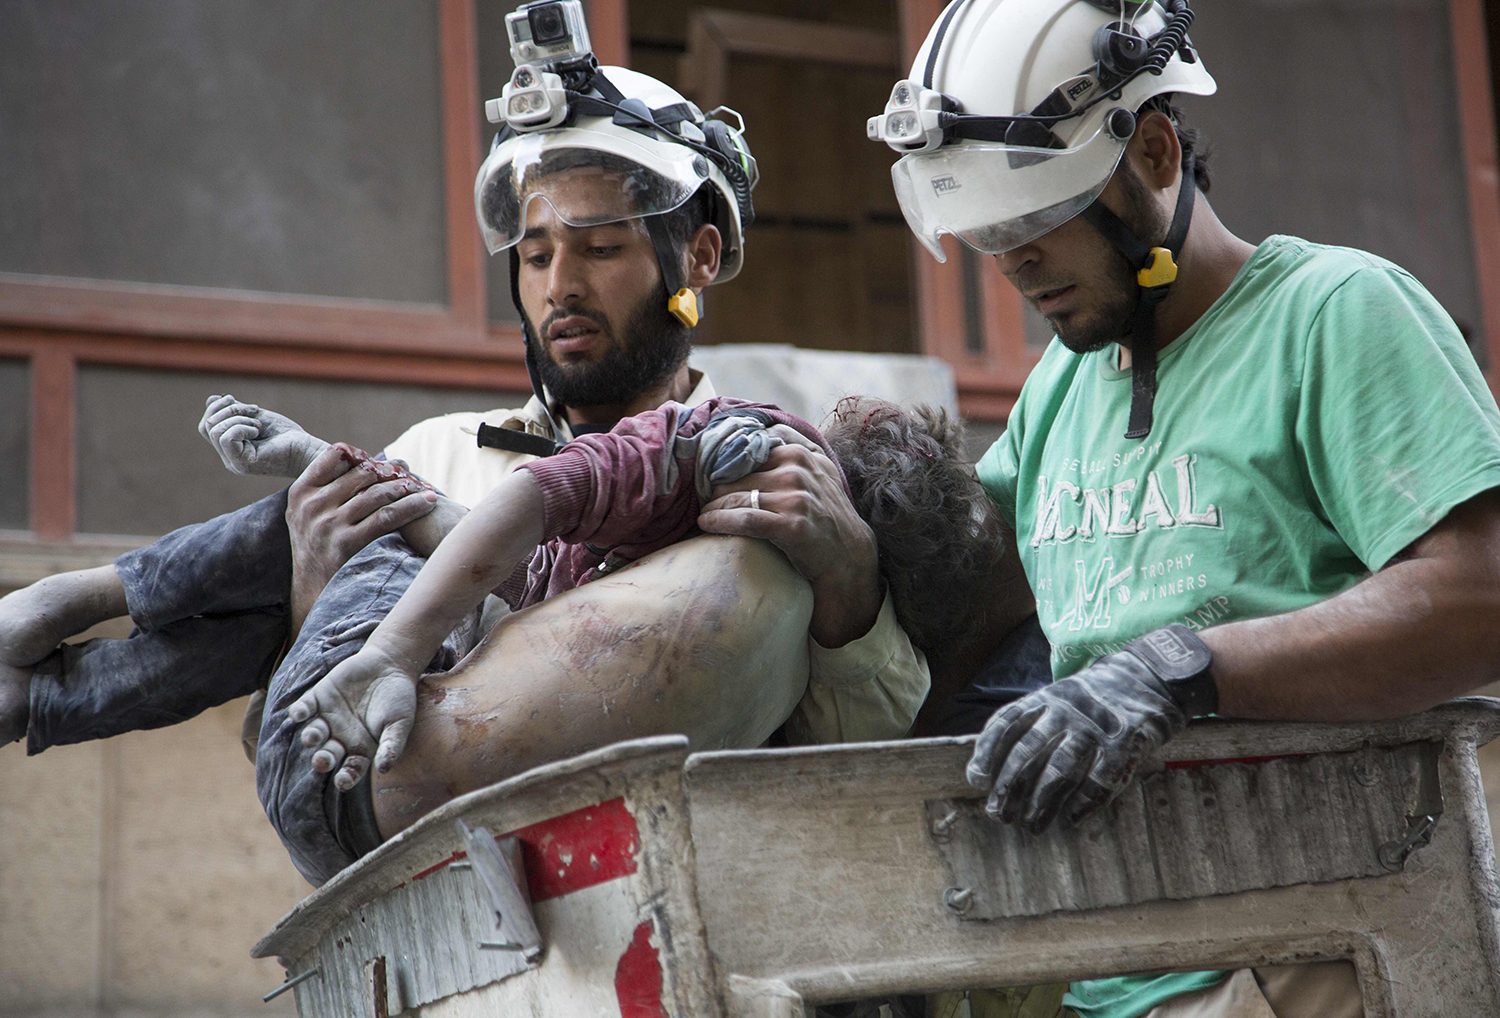 EDITORS NOTE: Graphic content / Syrian rescuers hold the body of a girl after pulling it from rubble of a budling following government forces air strikes in the rebel held neighbourhood of Al-Shaar in Aleppo on September 27, 2016. Syria's army took control of a rebel-held district in central Aleppo, after days of heavy air strikes that have killed dozens and sparked allegations of war crimes. / AFP PHOTO / KARAM AL-MASRI / TT / kod 444